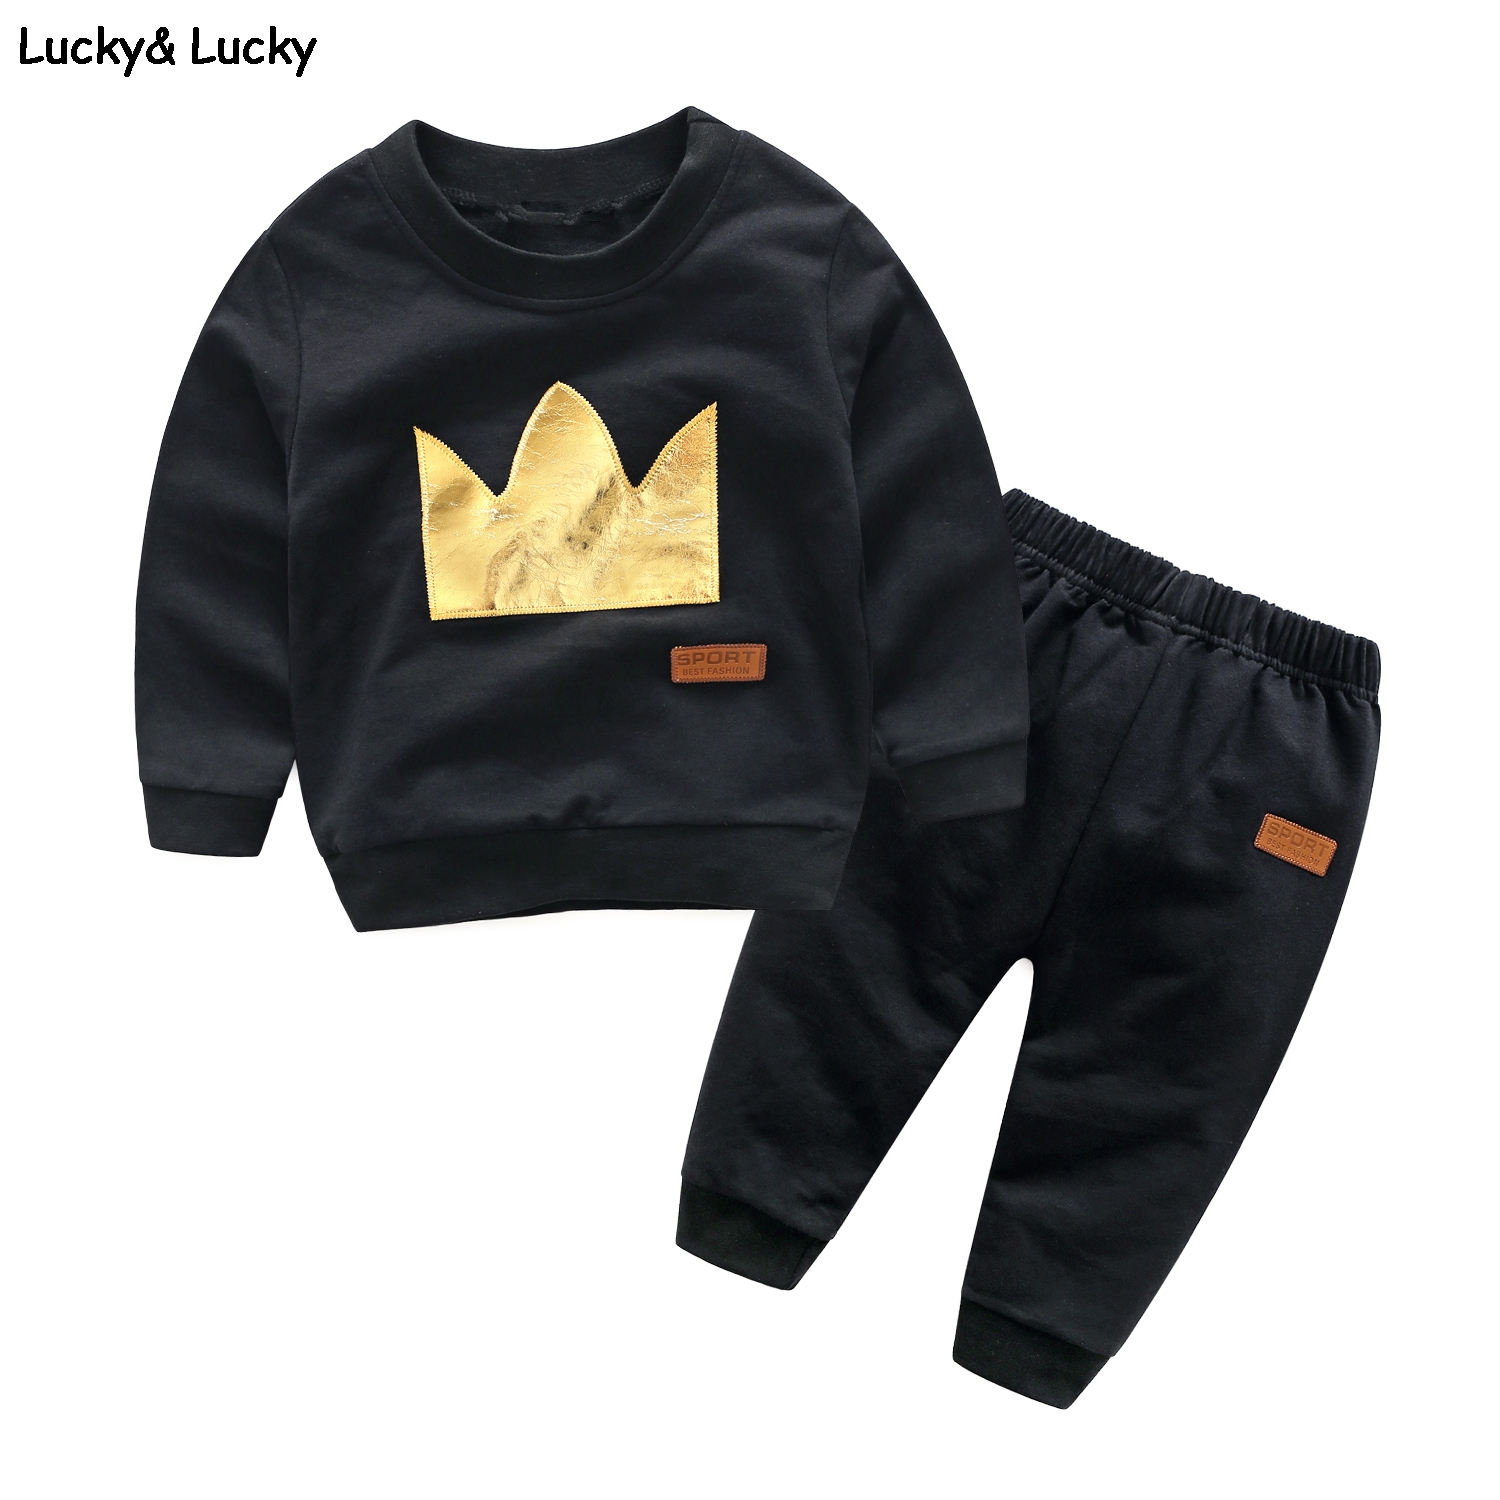 Newborn clothes cotton t-shirt and pants black and crown printed fashion kids clothes long sleeve bebes clothing set image